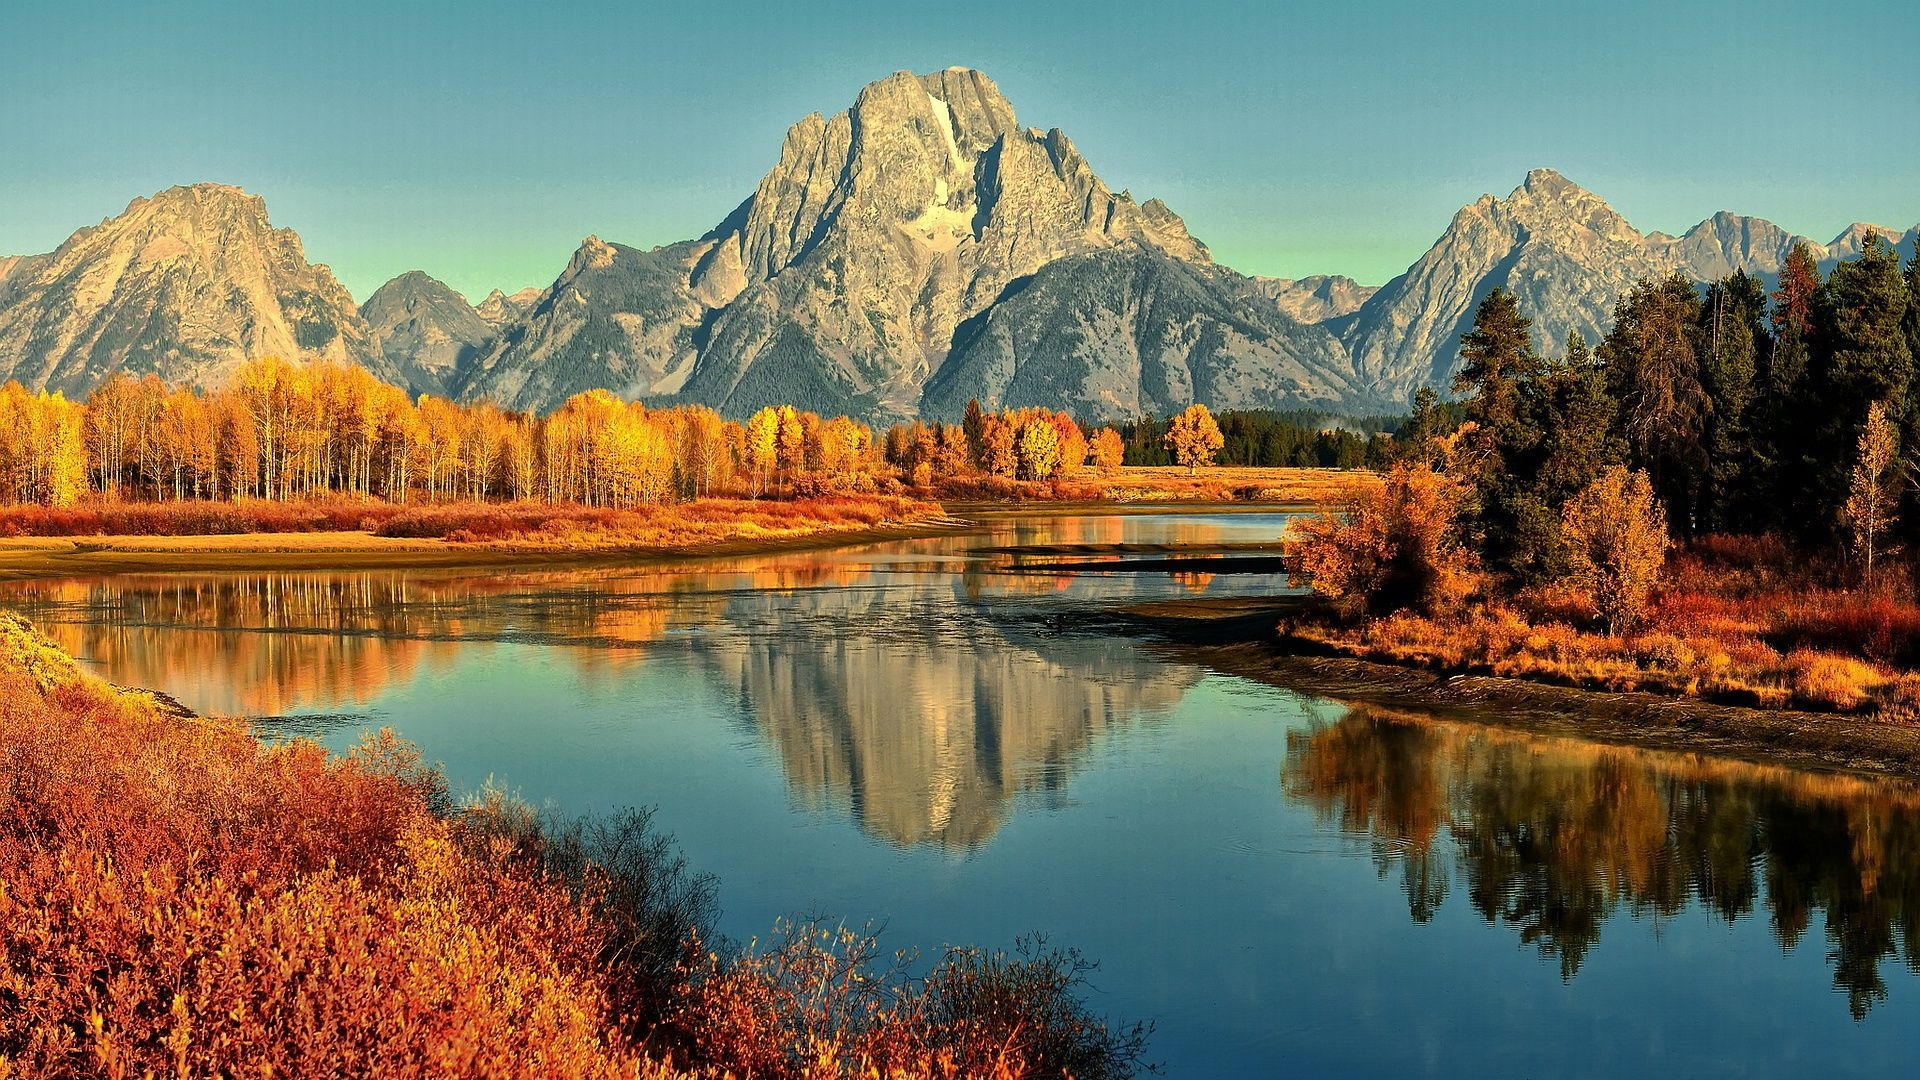 45 Autumn Mountains Desktop Wallpapers   Download at WallpaperBro 1920x1080